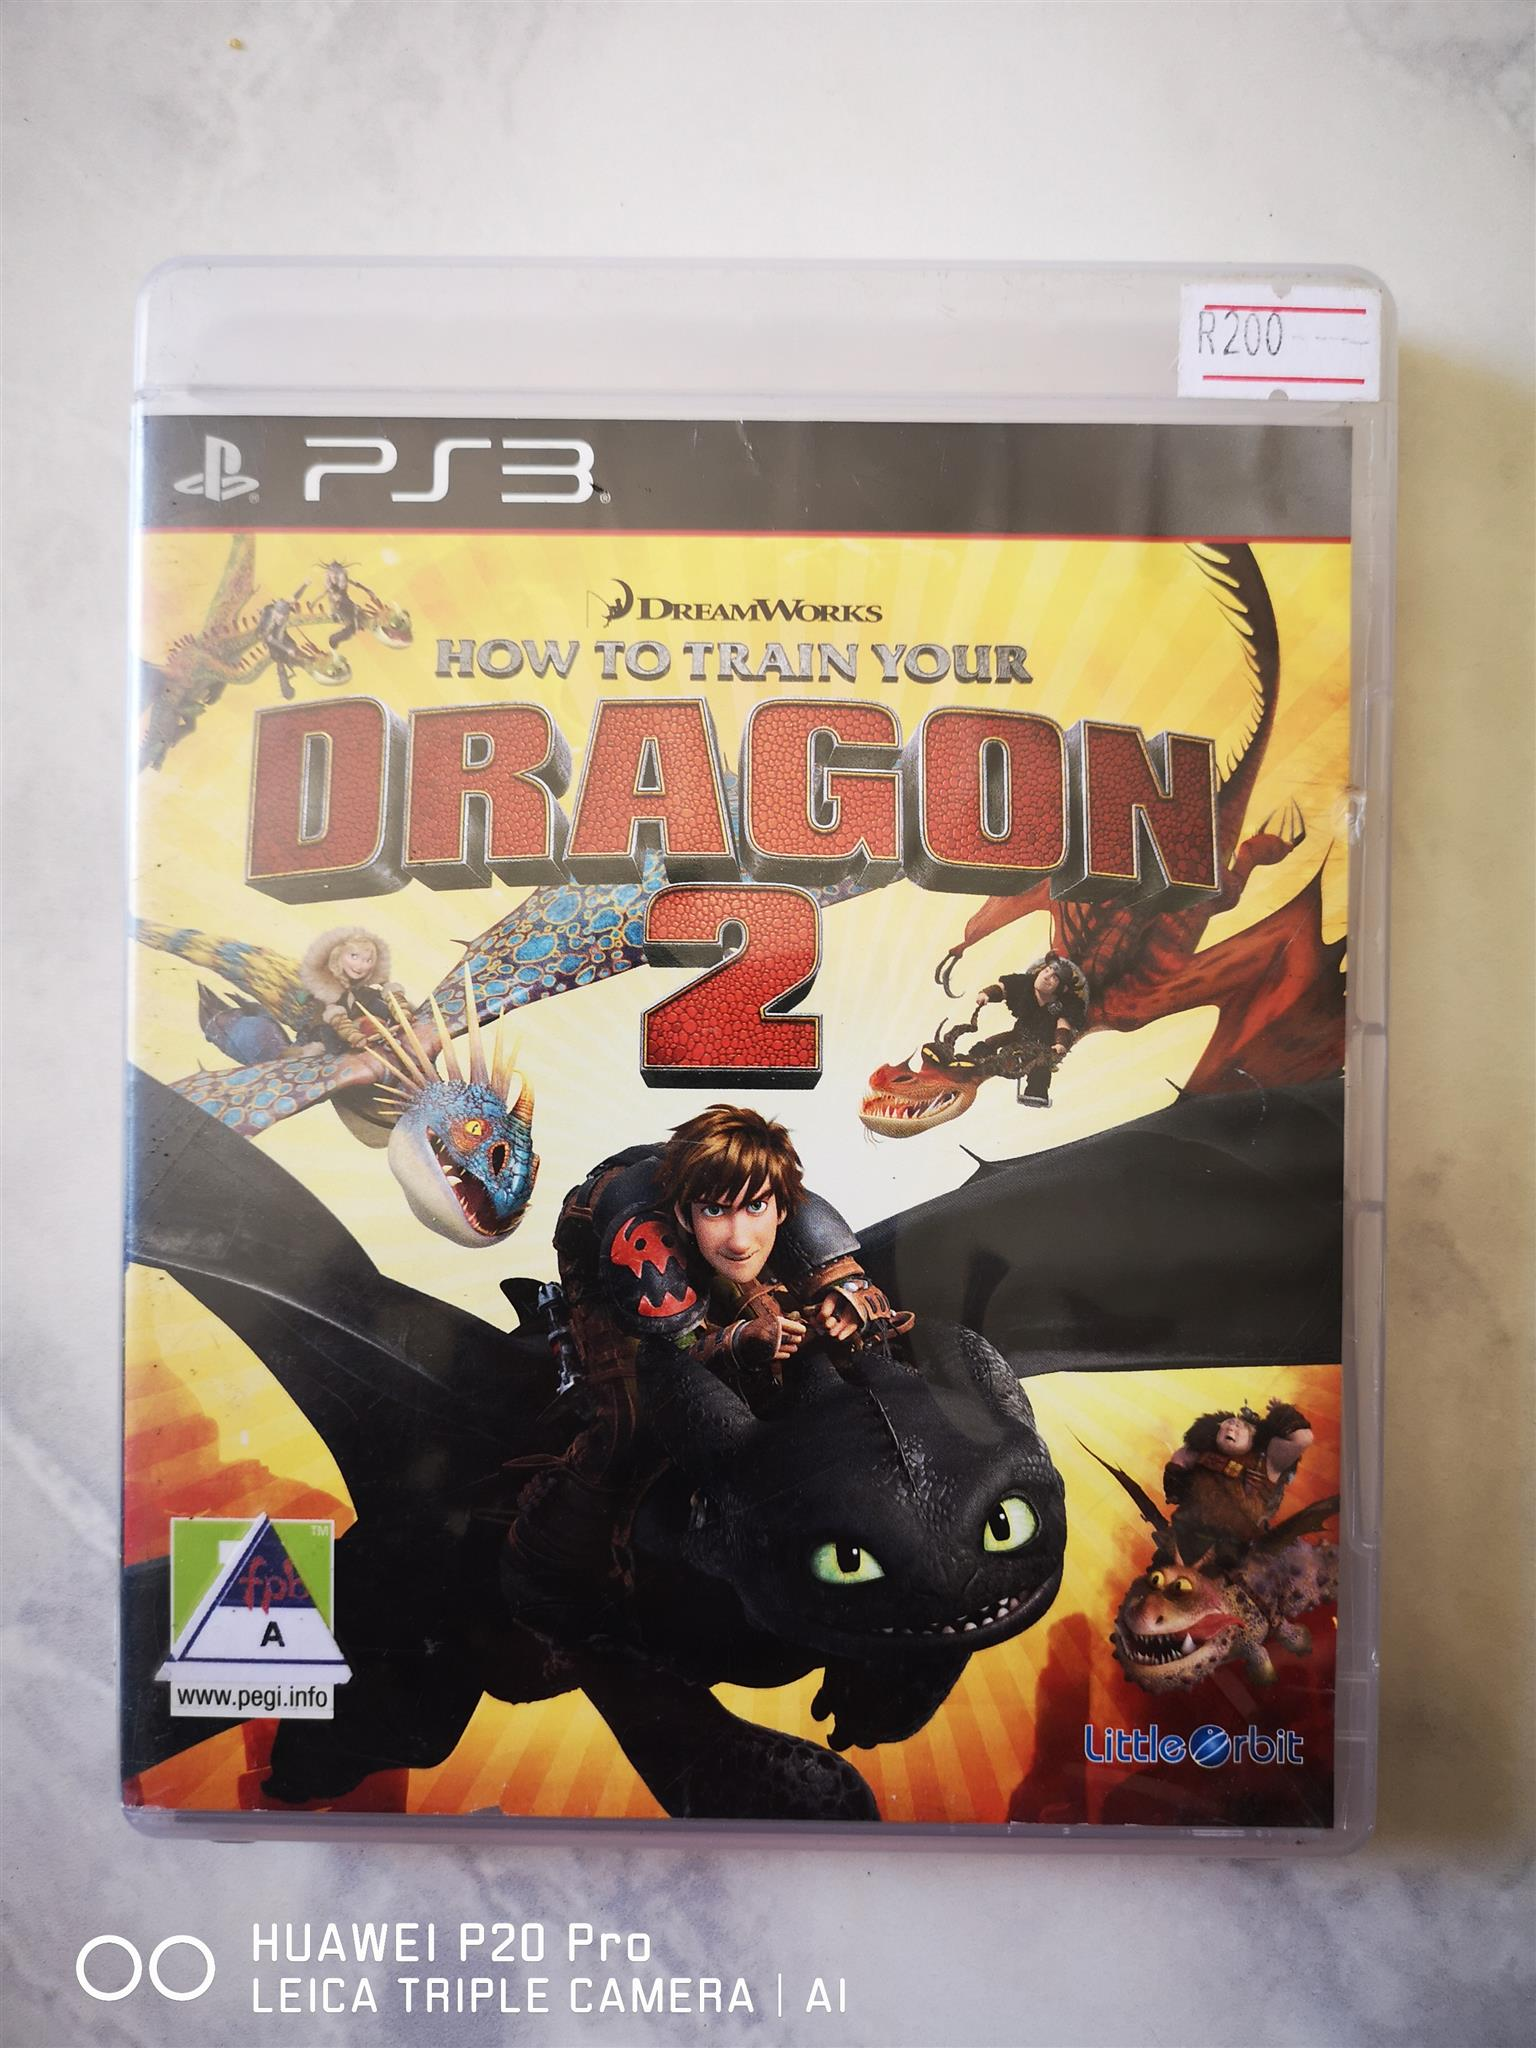 Sony Playstation 3 with accessories for sale